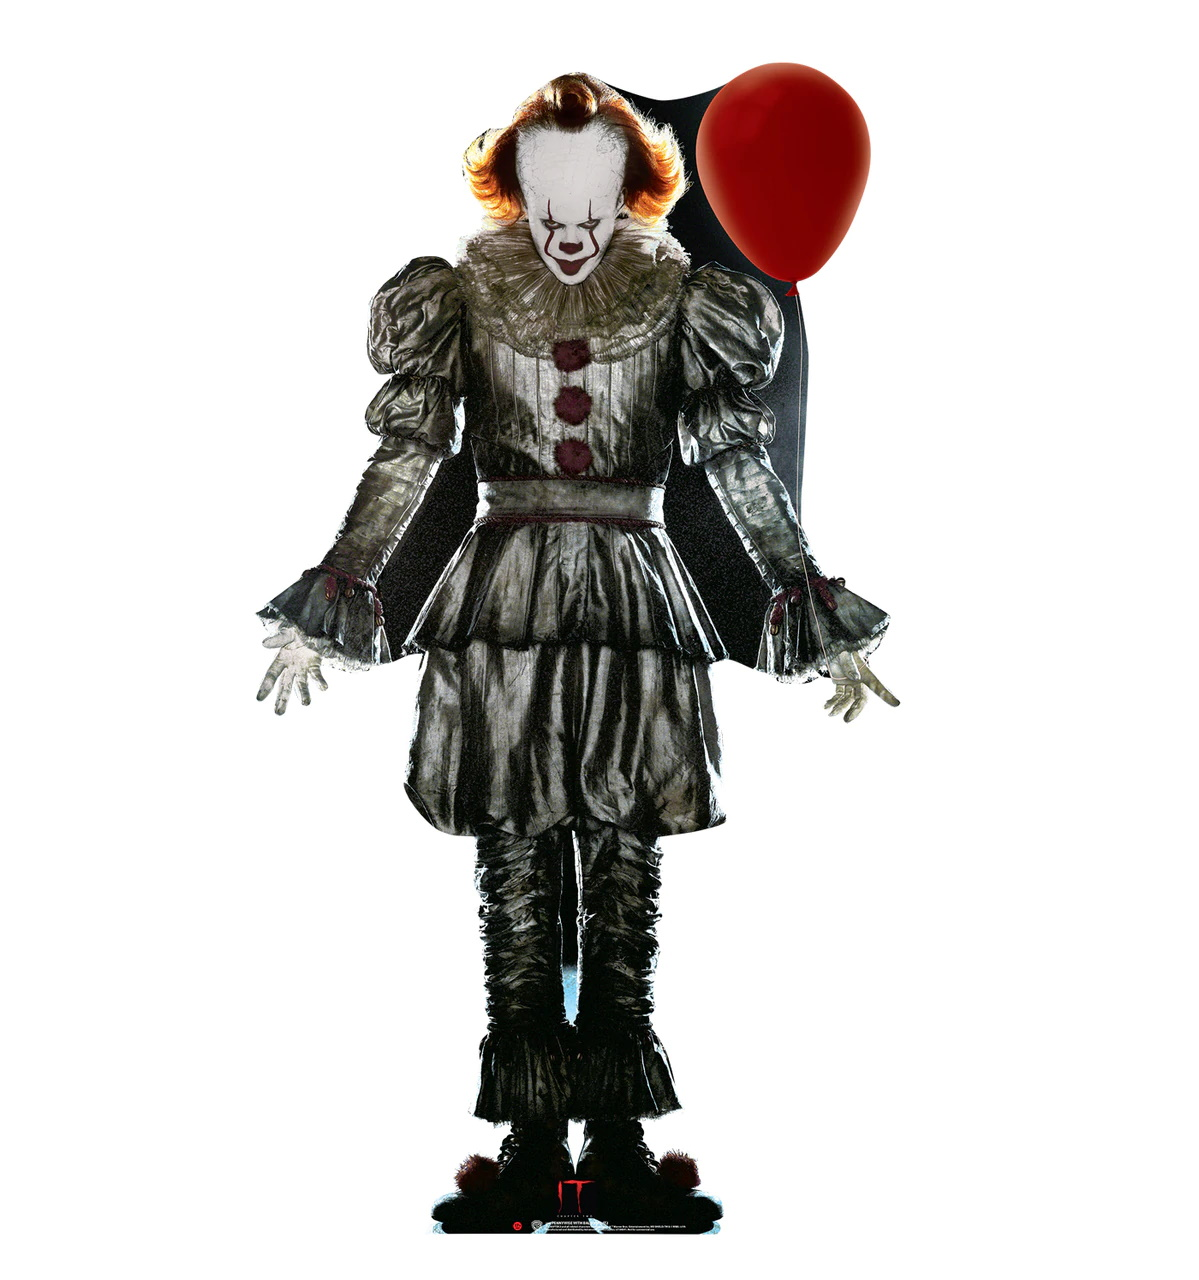 Pennywise with Balloon from IT CHAPTER 2 Movie 2019 Cardboard Cutout